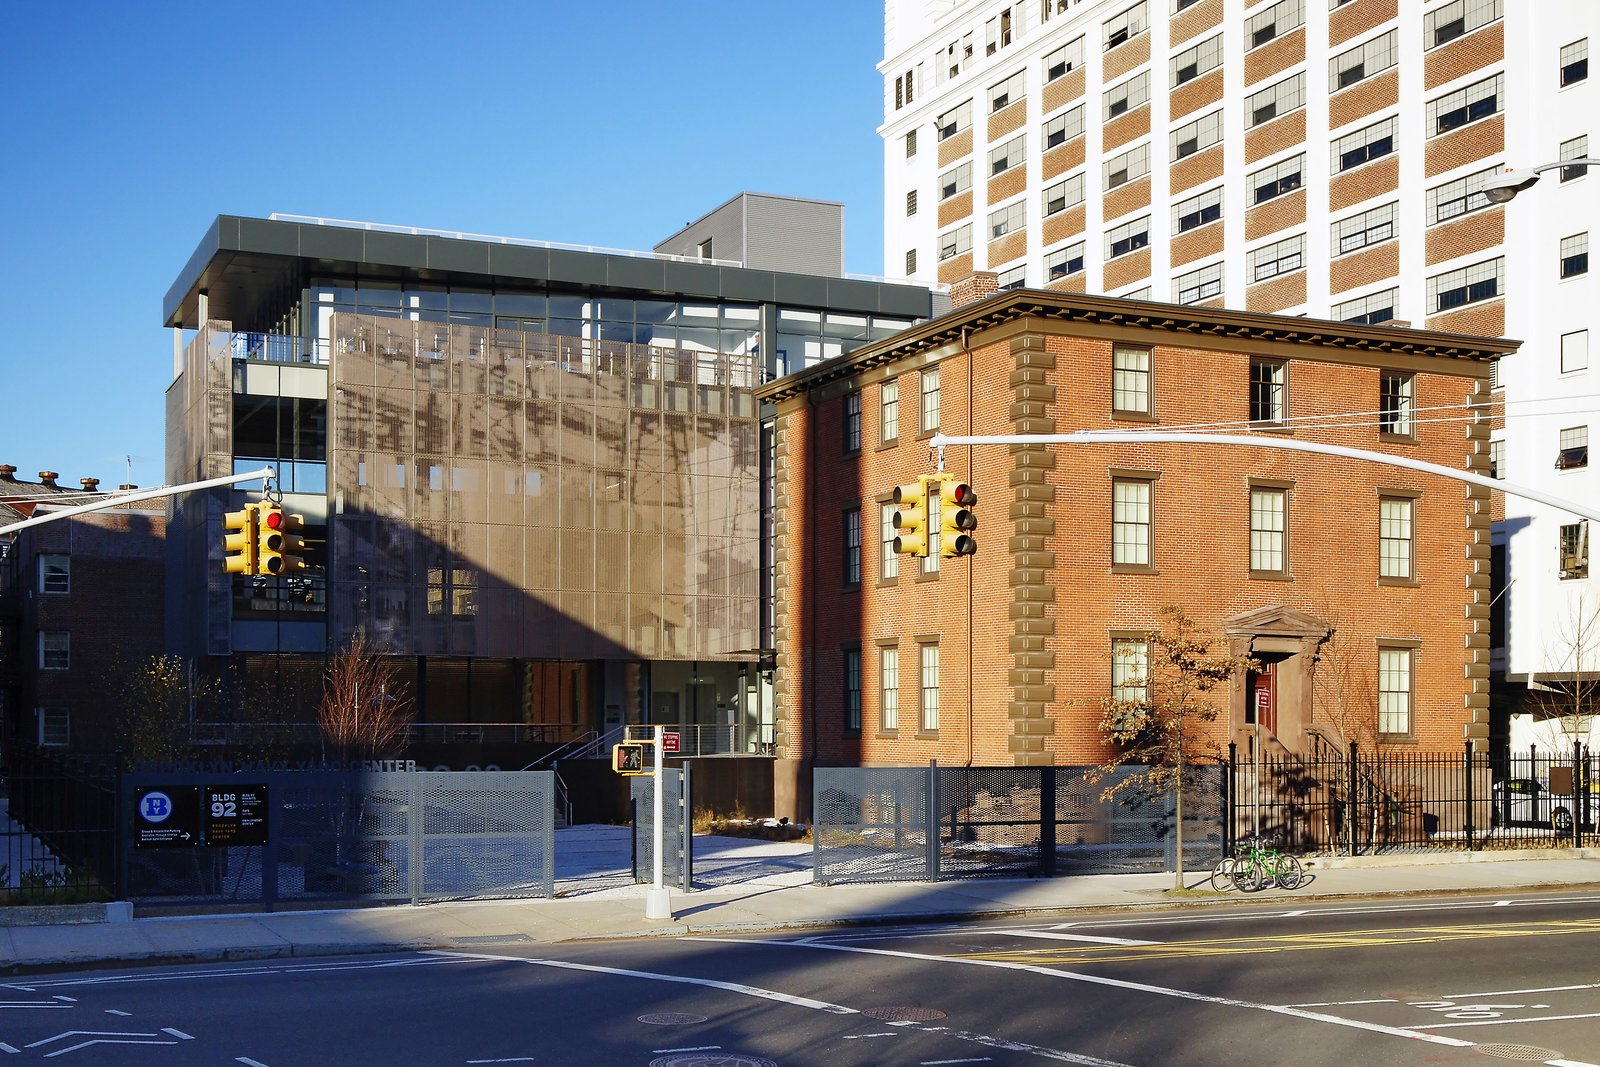 October 25 Building of the Day: The Brooklyn Navy Yard Center at BLDG 92  Beyer Blinder Belle Architects & Planners and Workshop/APD LLC   Photo credit: Copyright Tom Olcott   2013 Buildings of the Day by Archtober